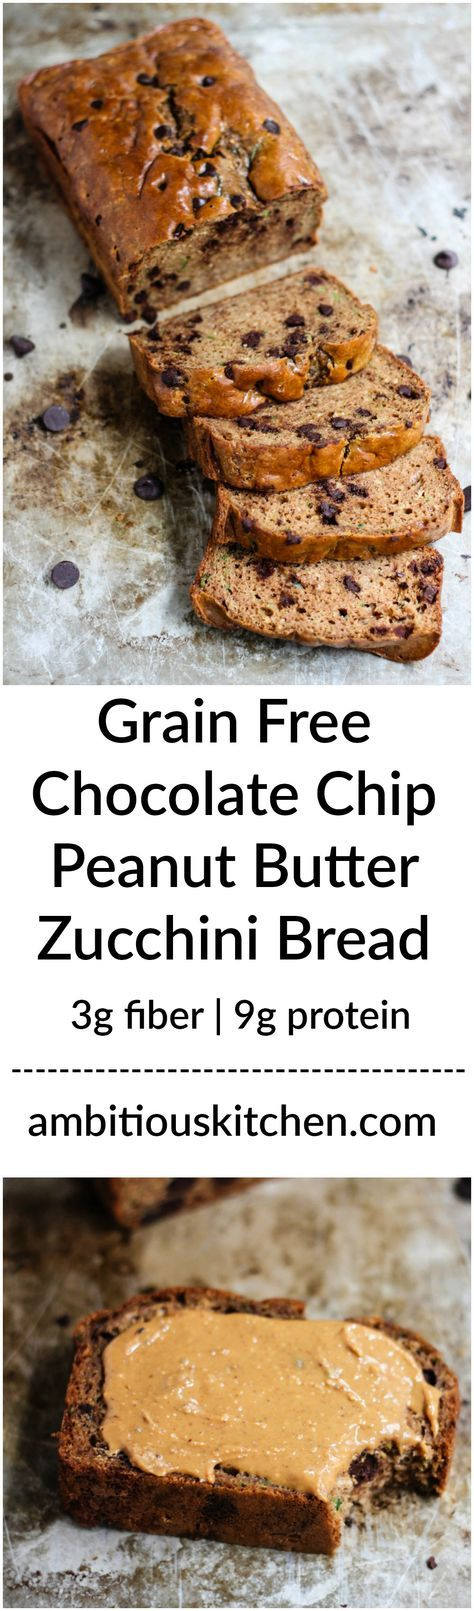 Grain free peanut butter zucchini bread with chocolate chips! There are two options to make it: with coconut flour or with protein powder! Soft, fluffy, moist and a good source of protein & fiber.